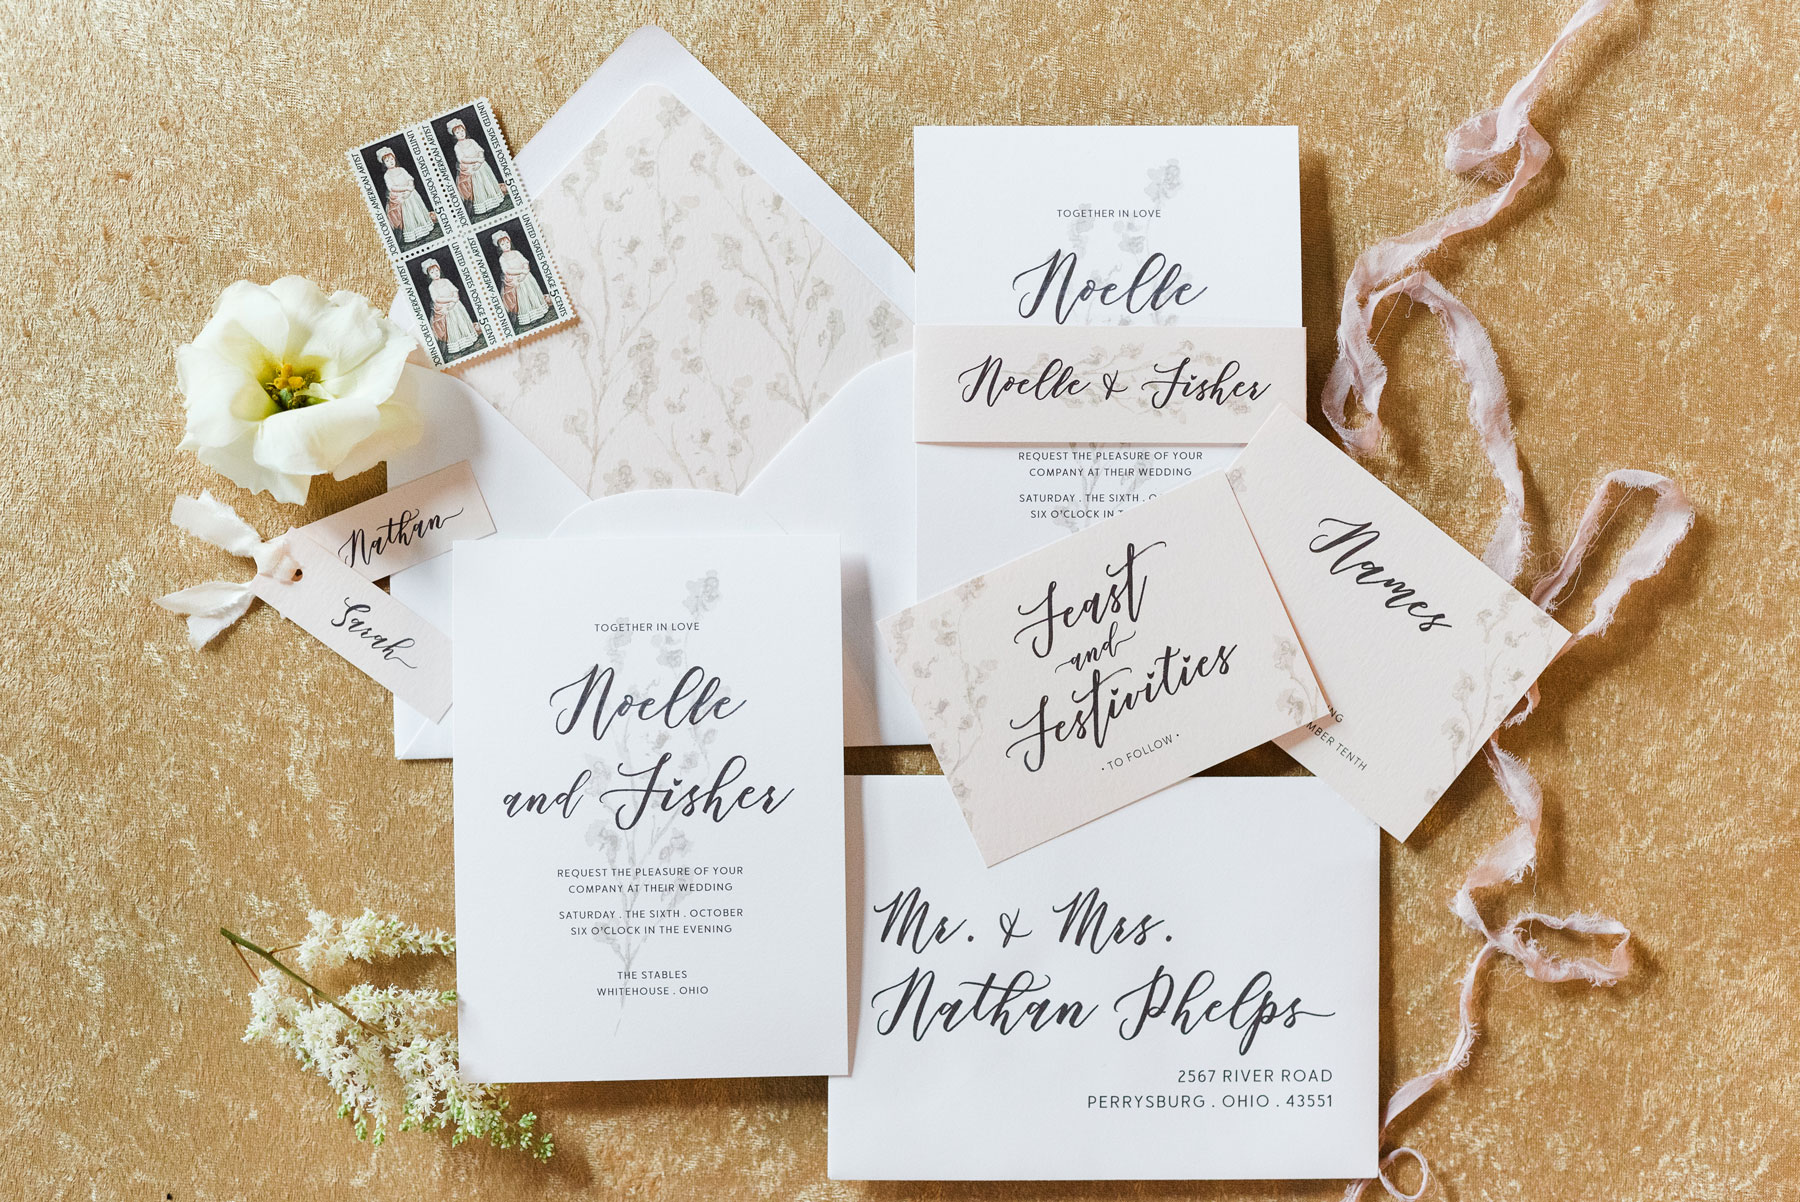 Dress Up Your Wedding Invitations // Uppercase Designs